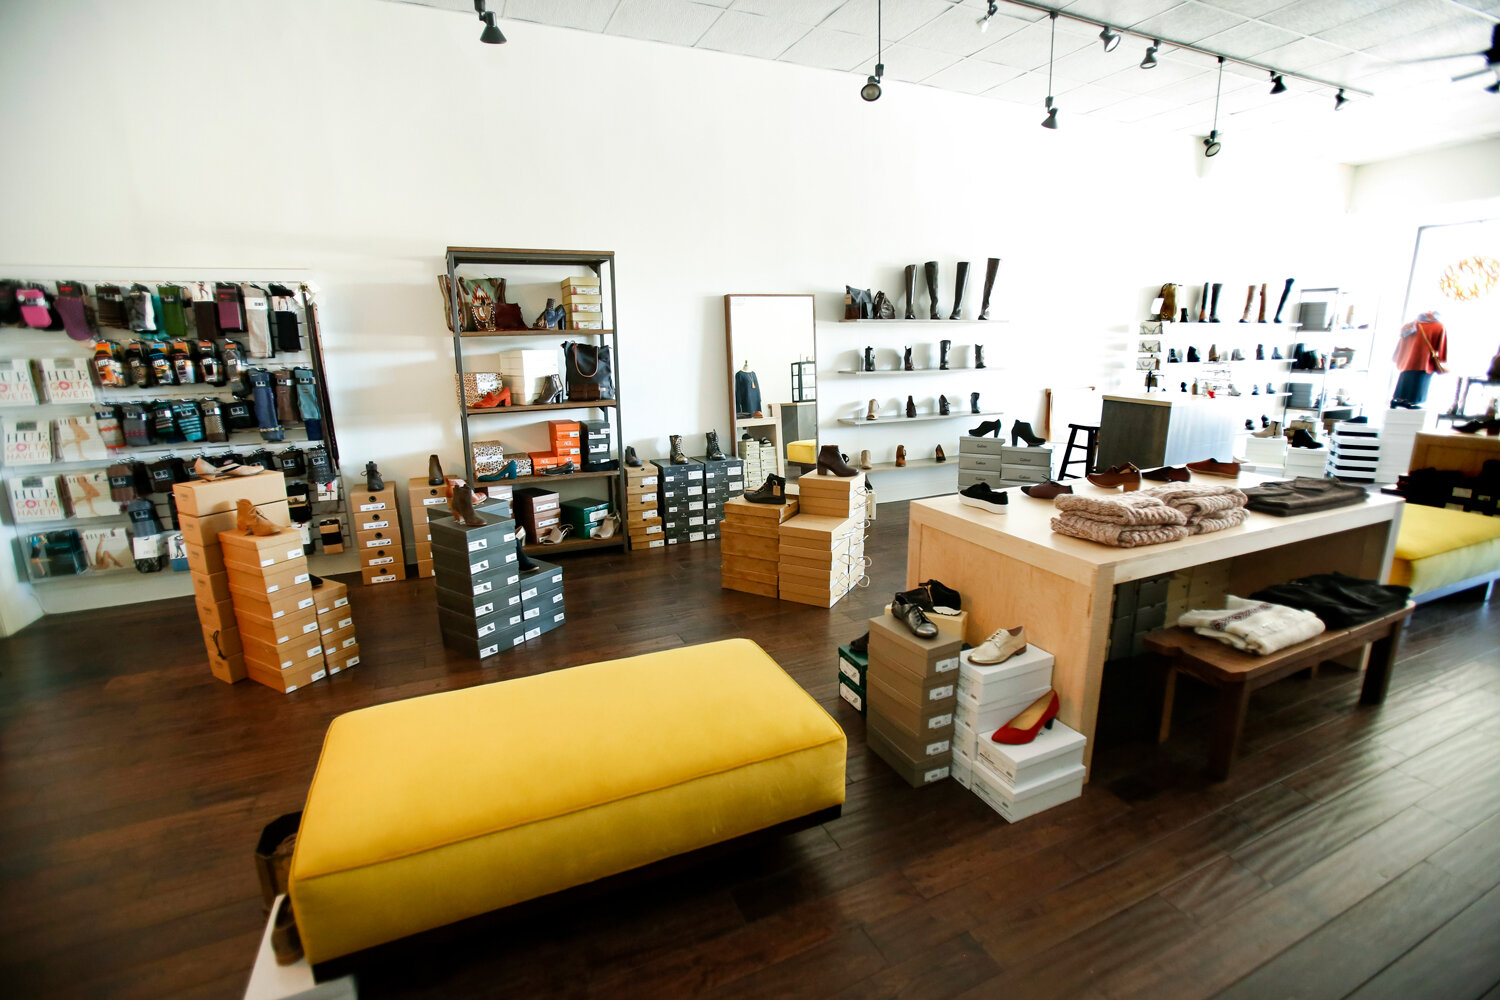 nora's-shoes-manouche-small-business-photography-marketing-commercial-ruthie-hauge-madison-wi-shoe-store-2.jpg